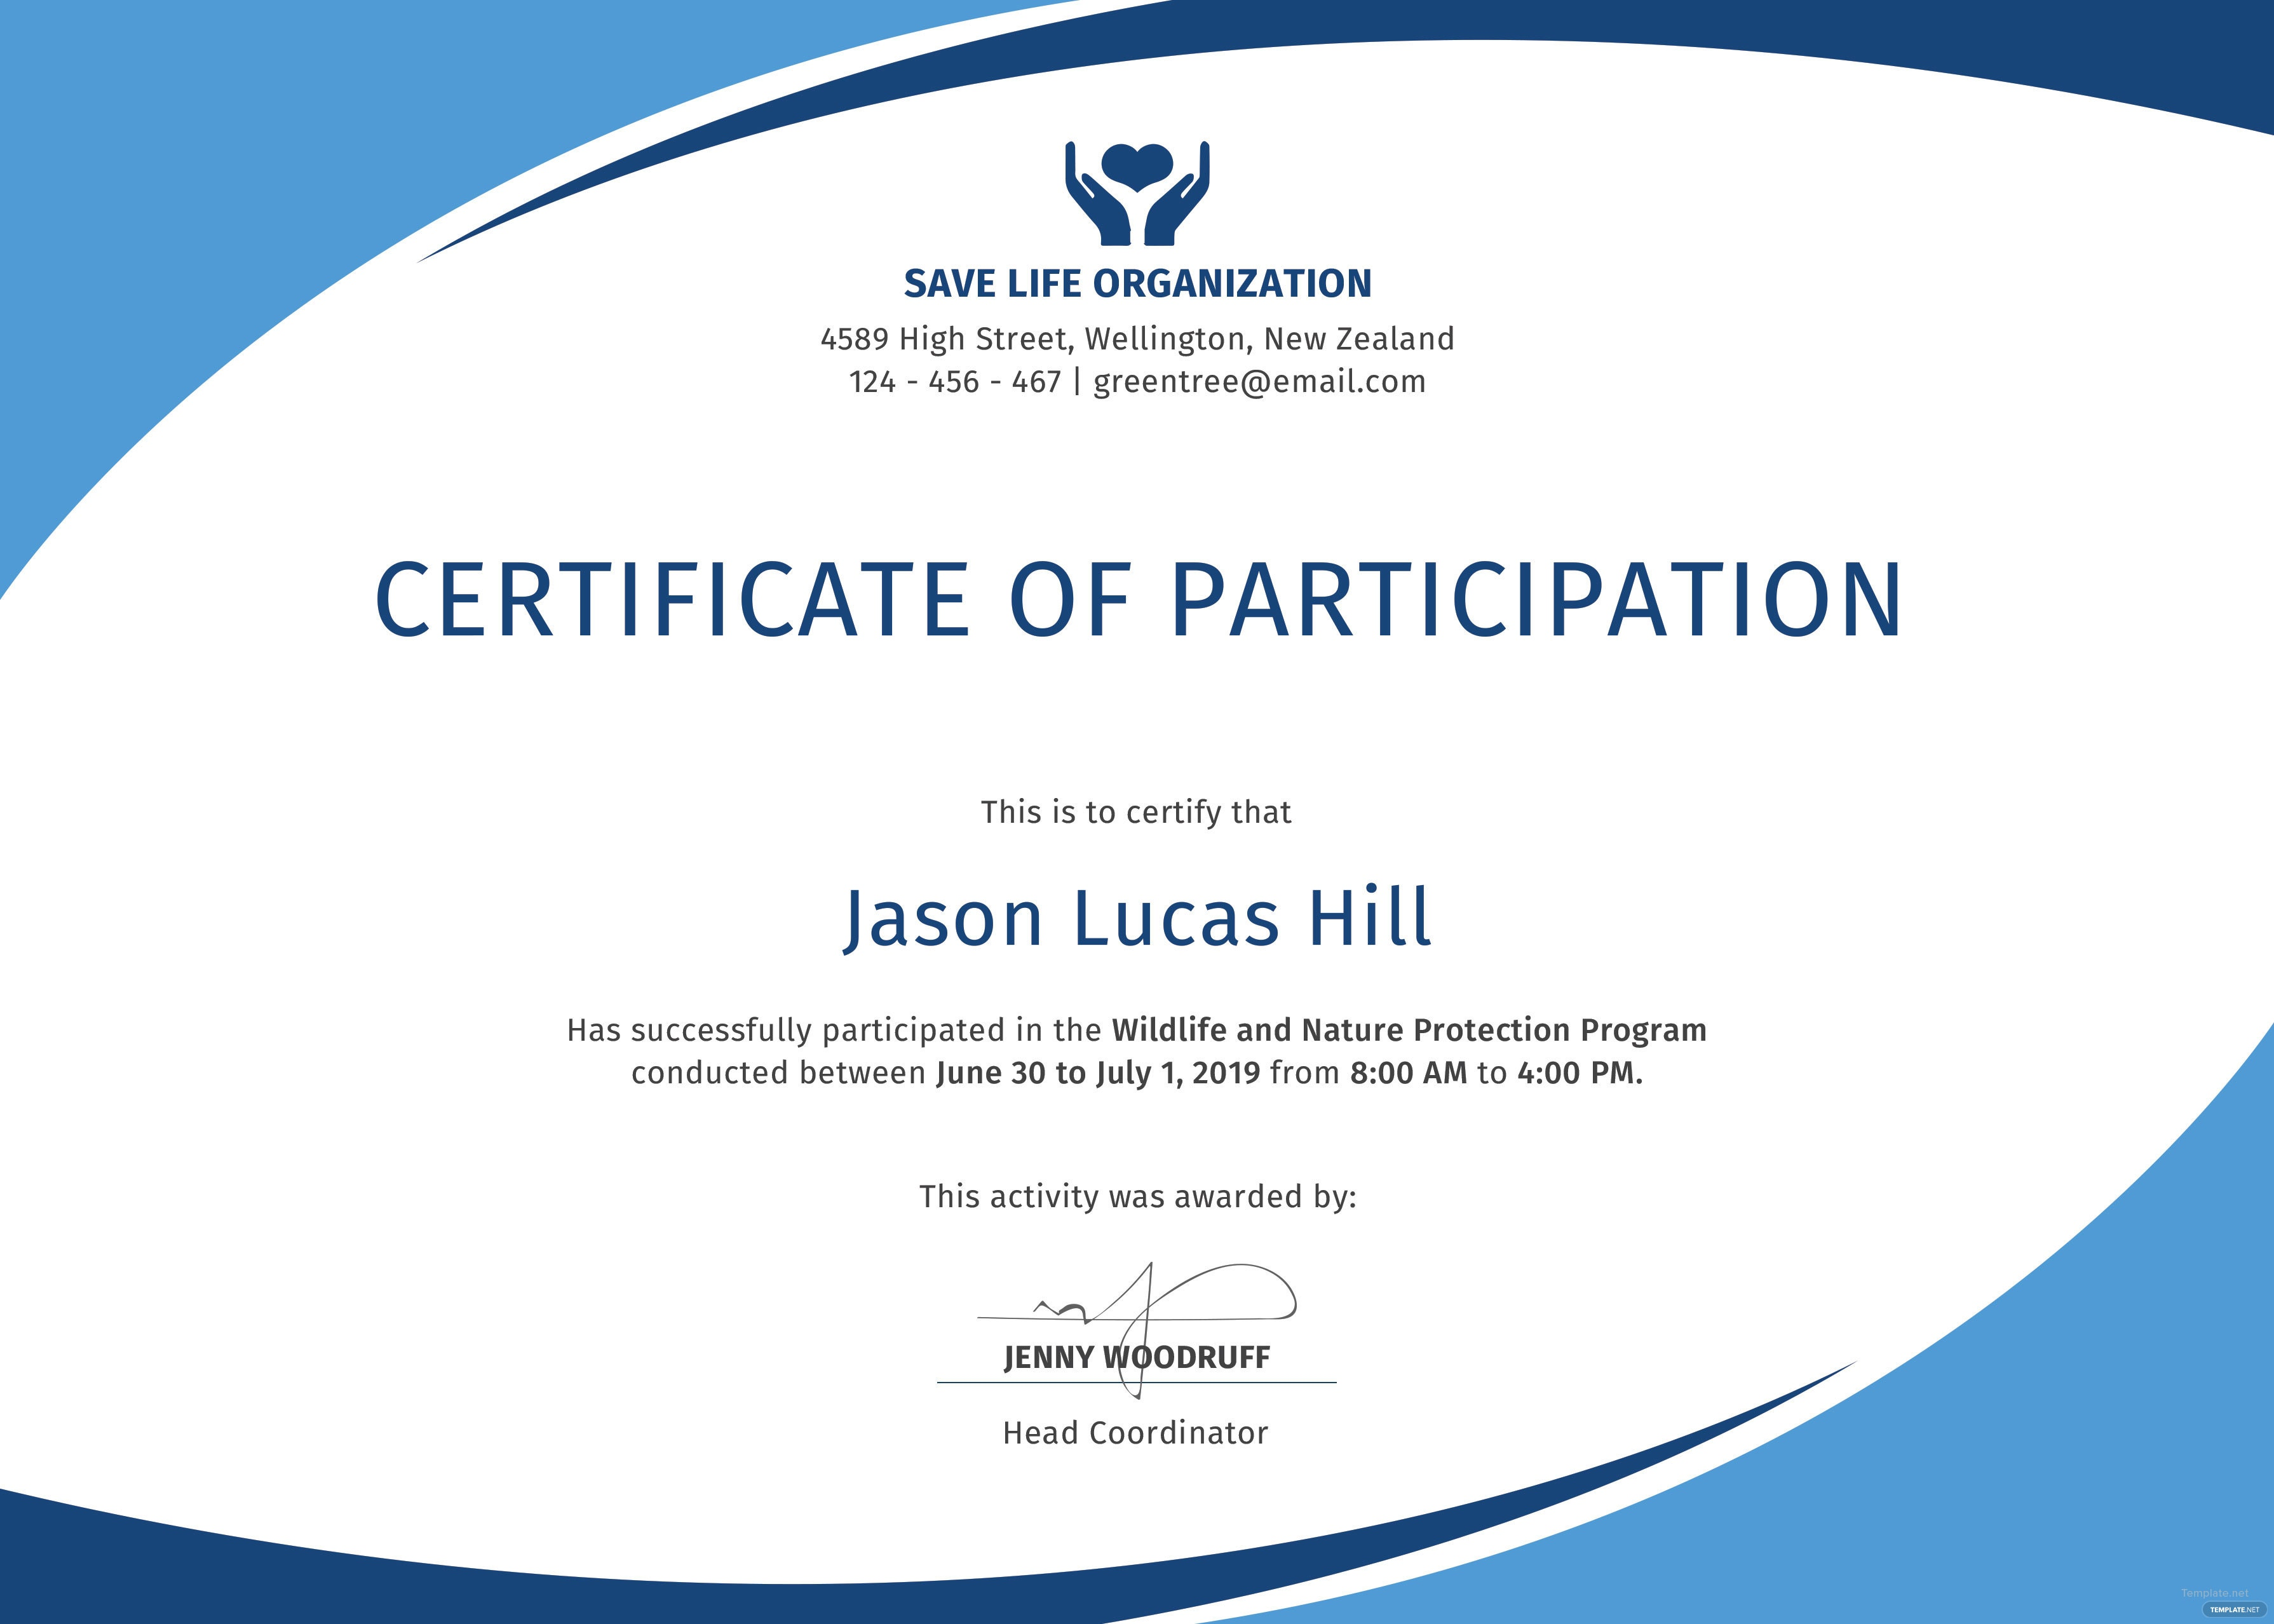 Certificate Of Participation Template Free Free Program Participation Certificate Template In PSD MS Word Publisher Illustrator